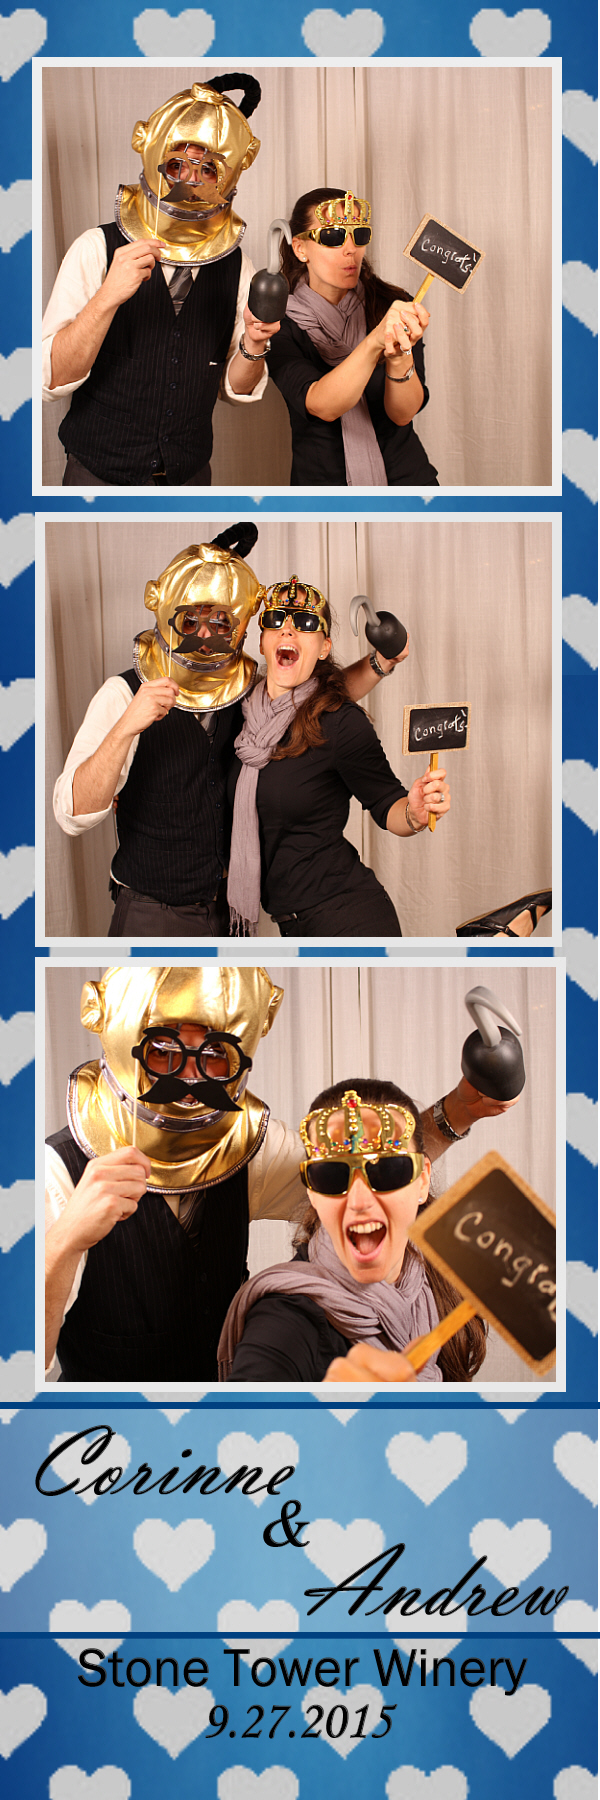 Guest House Events Photo Booth C&A (35).jpg